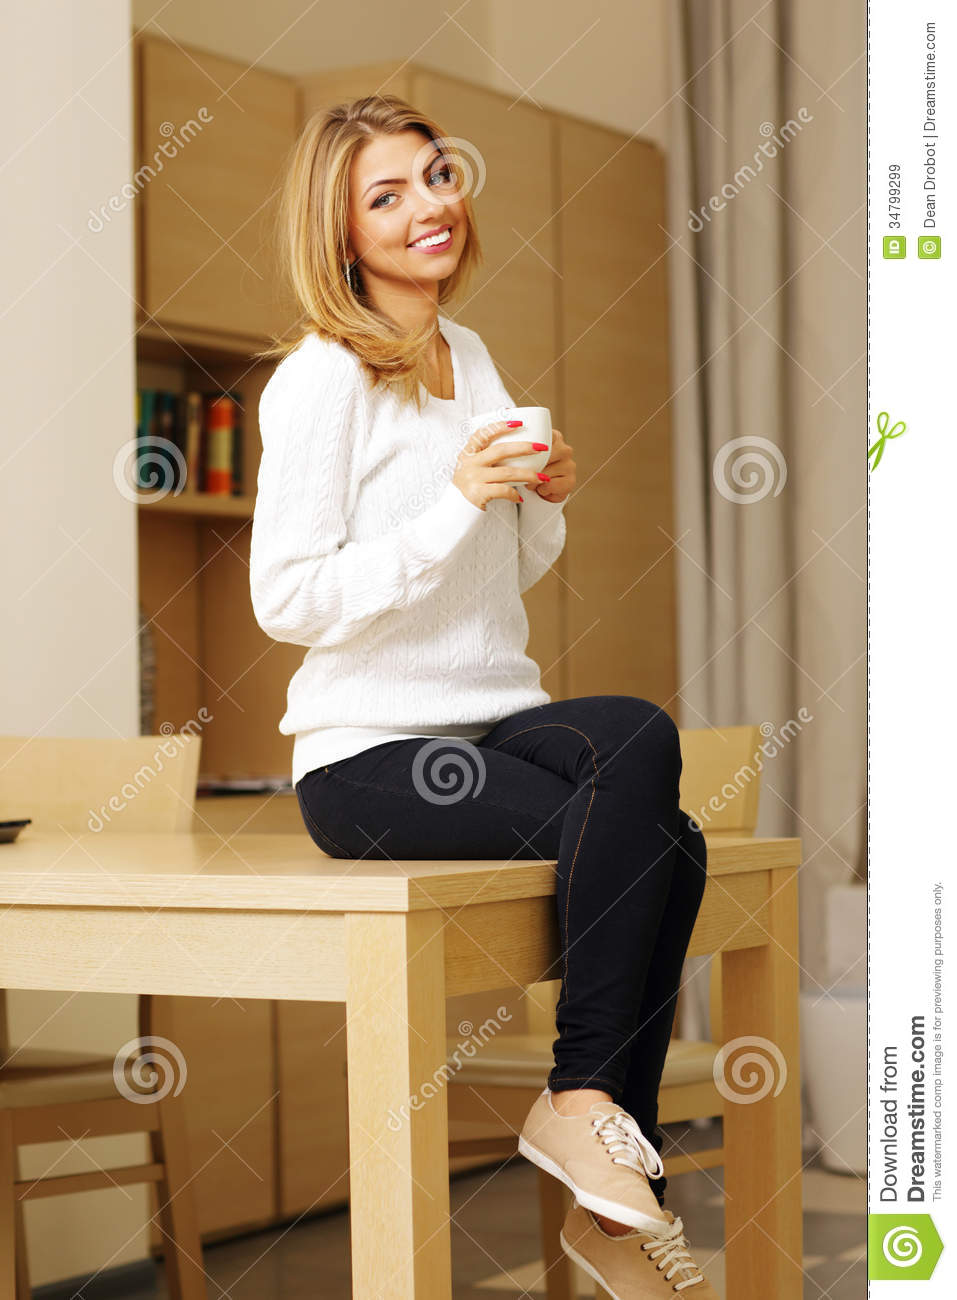 Woman Sitting On The Table And Drinking Coffee Royalty  : woman sitting table drinking coffee casual young 34799299 from dreamstime.com size 957 x 1300 jpeg 115kB